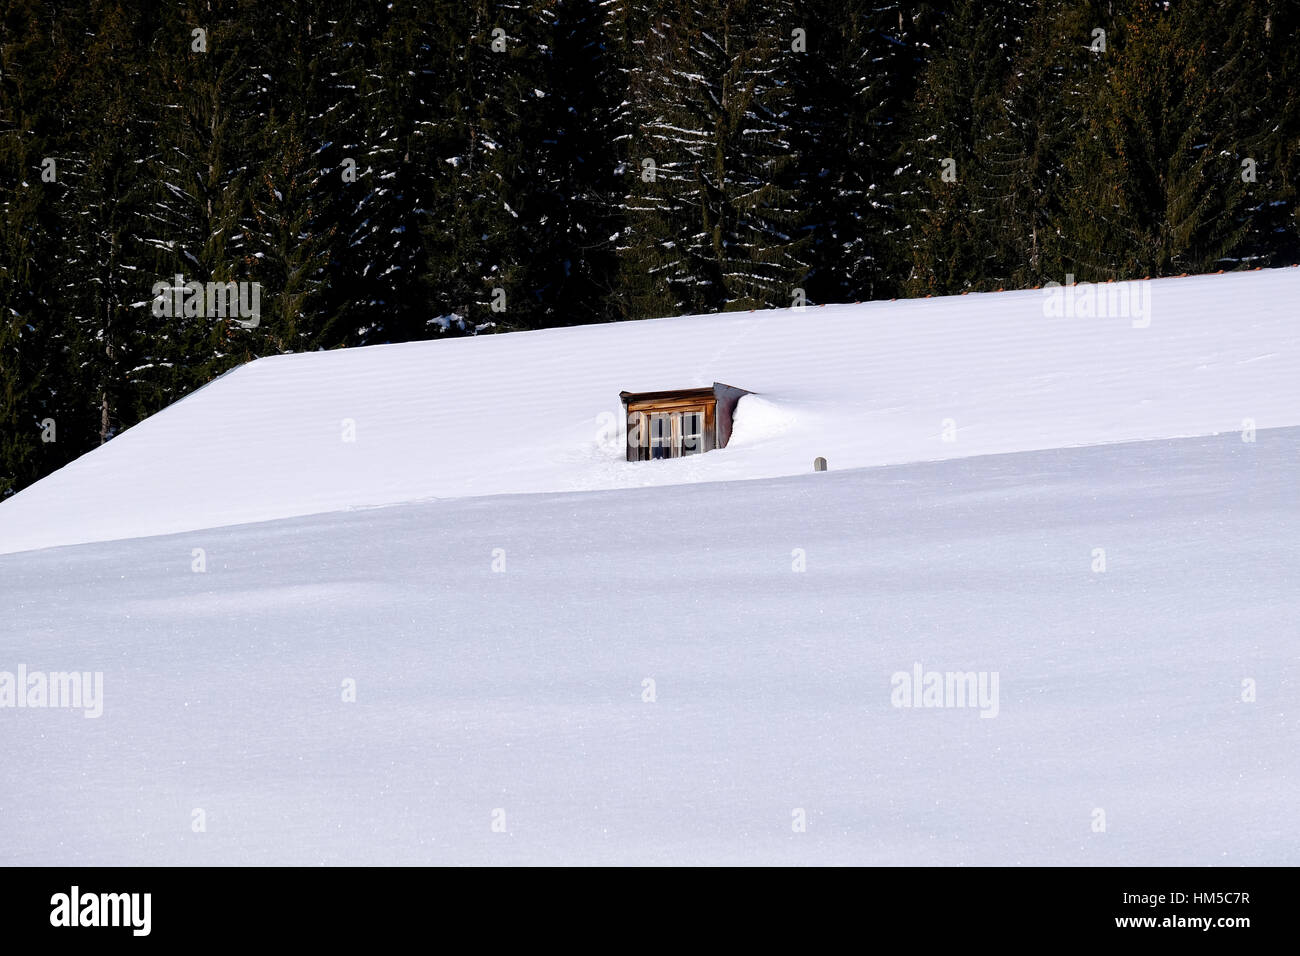 Window in the snow. Bavarian Alps. - Stock Image